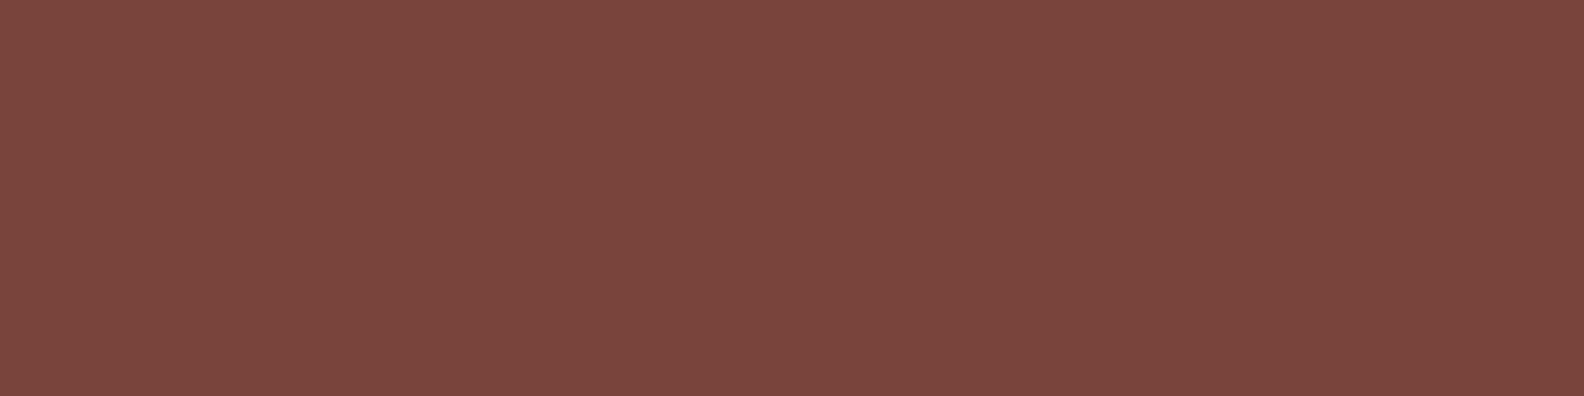 1584x396 Medium Tuscan Red Solid Color Background